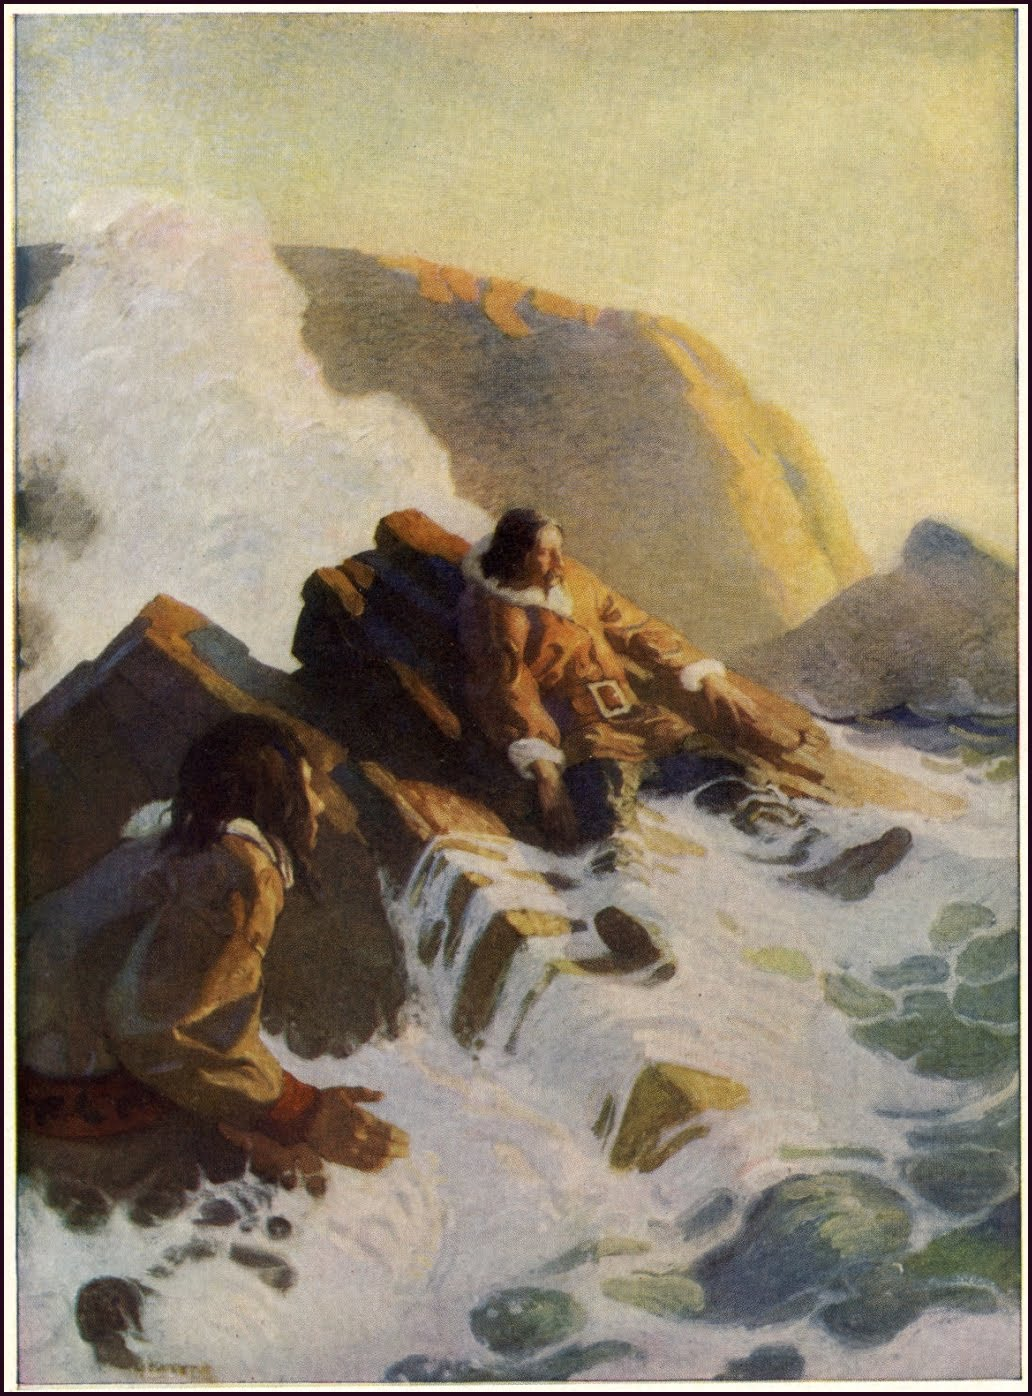 newell convers wyeth essay Thrill your walls now with a stunning newell convers wyeth print from the world's largest art gallery choose from thousands of newell convers wyeth artworks with the option to print on canvas, acrylic, wood or museum quality paper.